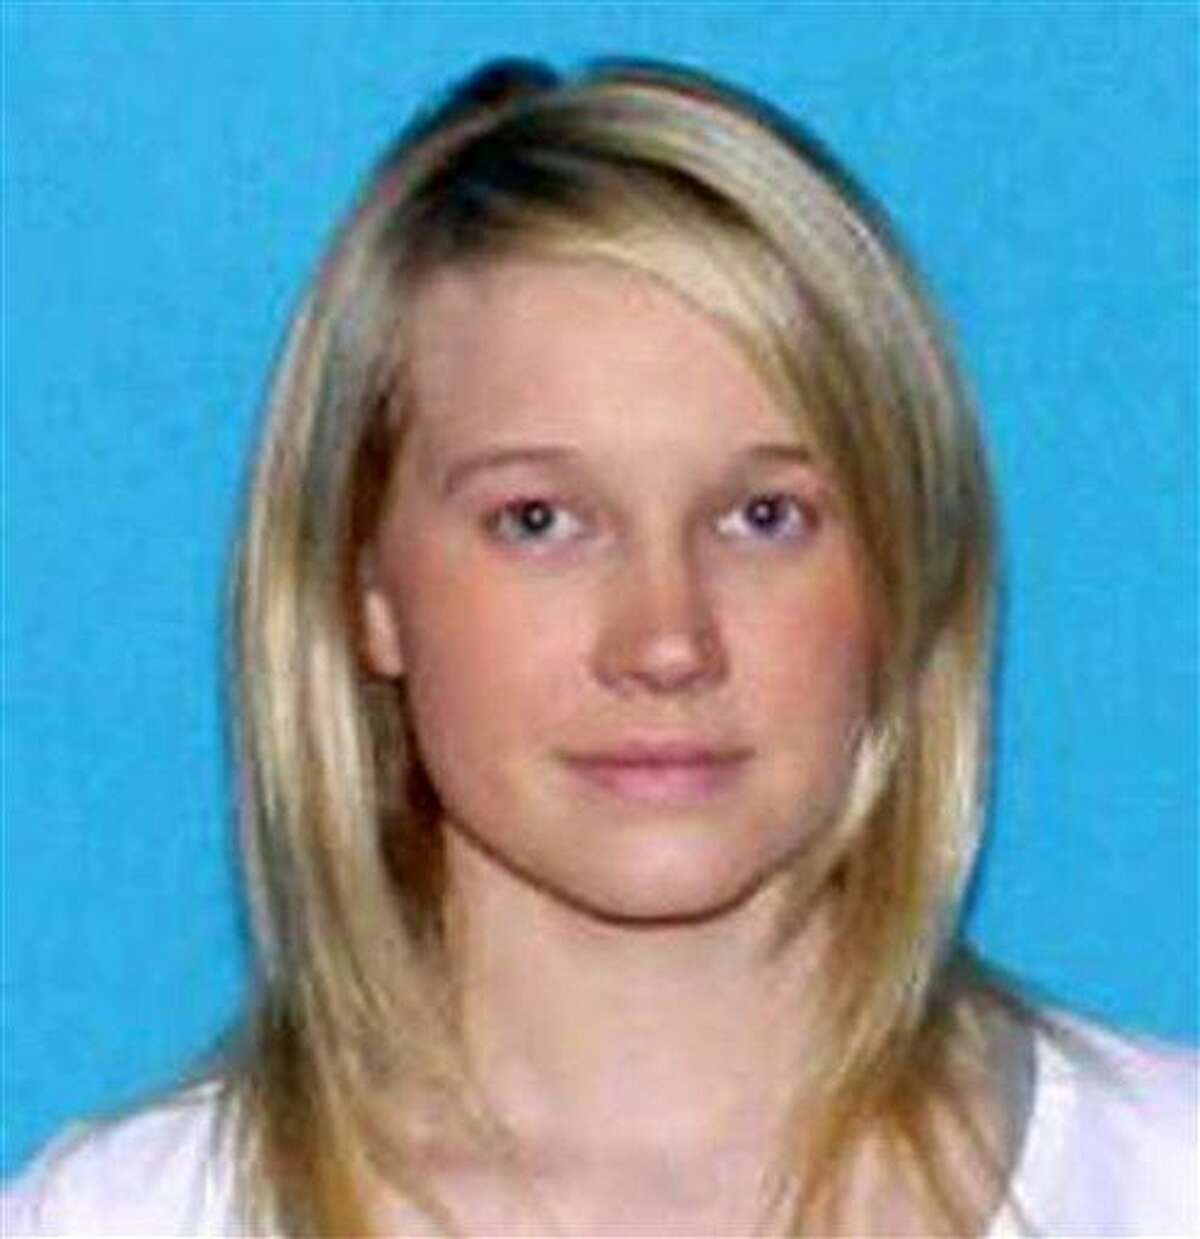 Rebekah Gay was found strangled in her mobile home. AP Photo